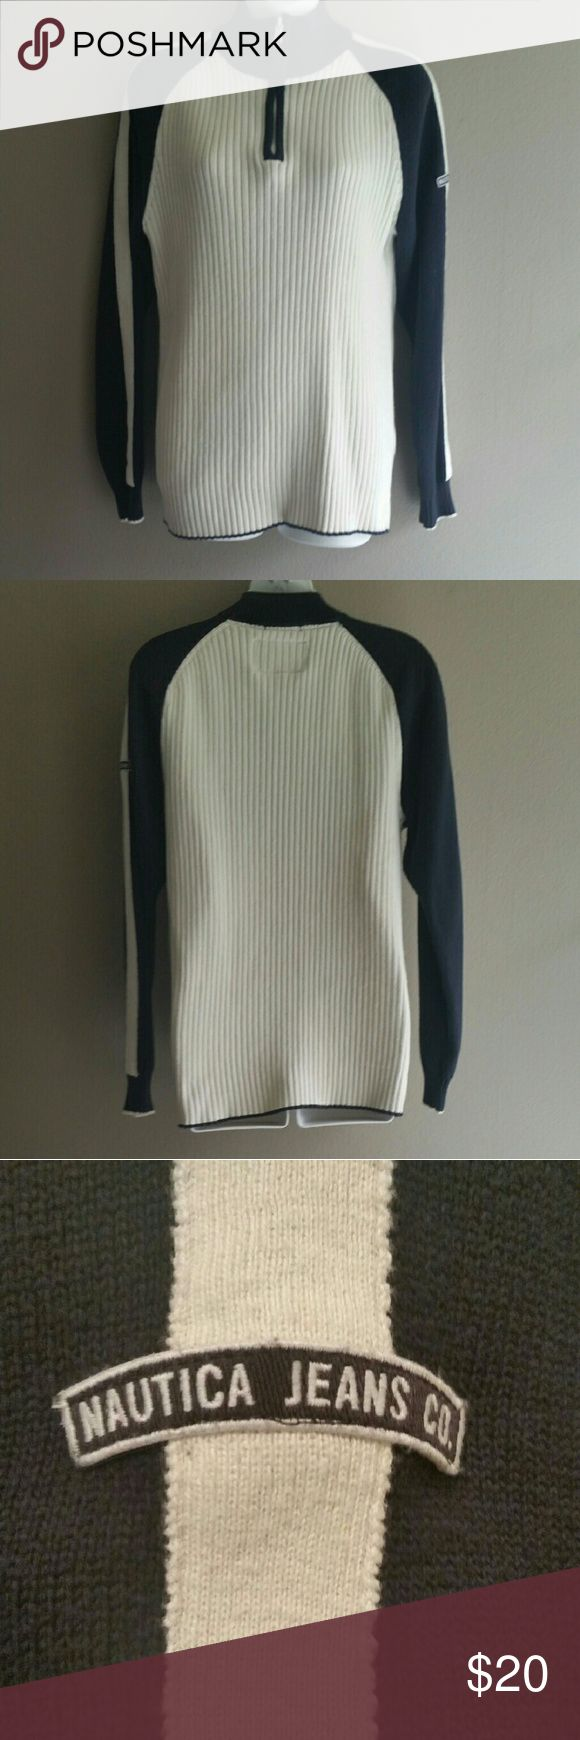 Men's pullover sweater by nautica CONDITION: Like New! --- CONCERNS: None! --- I will provide more pics, materials, measurements, etc. upon request! --- ***I welcome ALL OFFERS and do bundle discounts!*** Nautica Sweaters